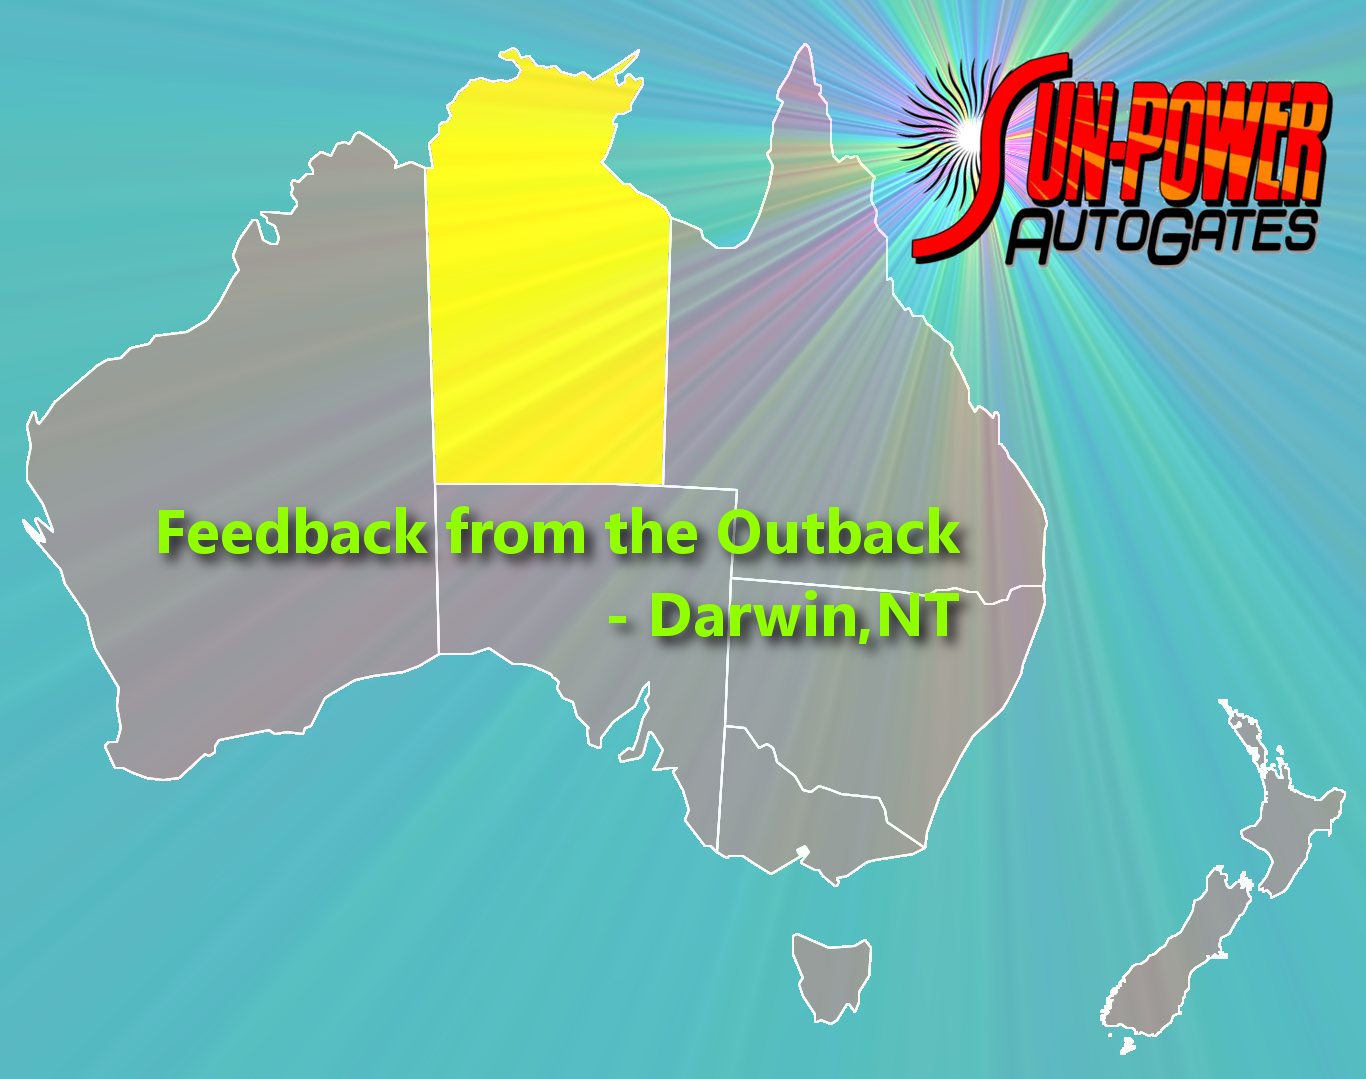 feedback from the NT